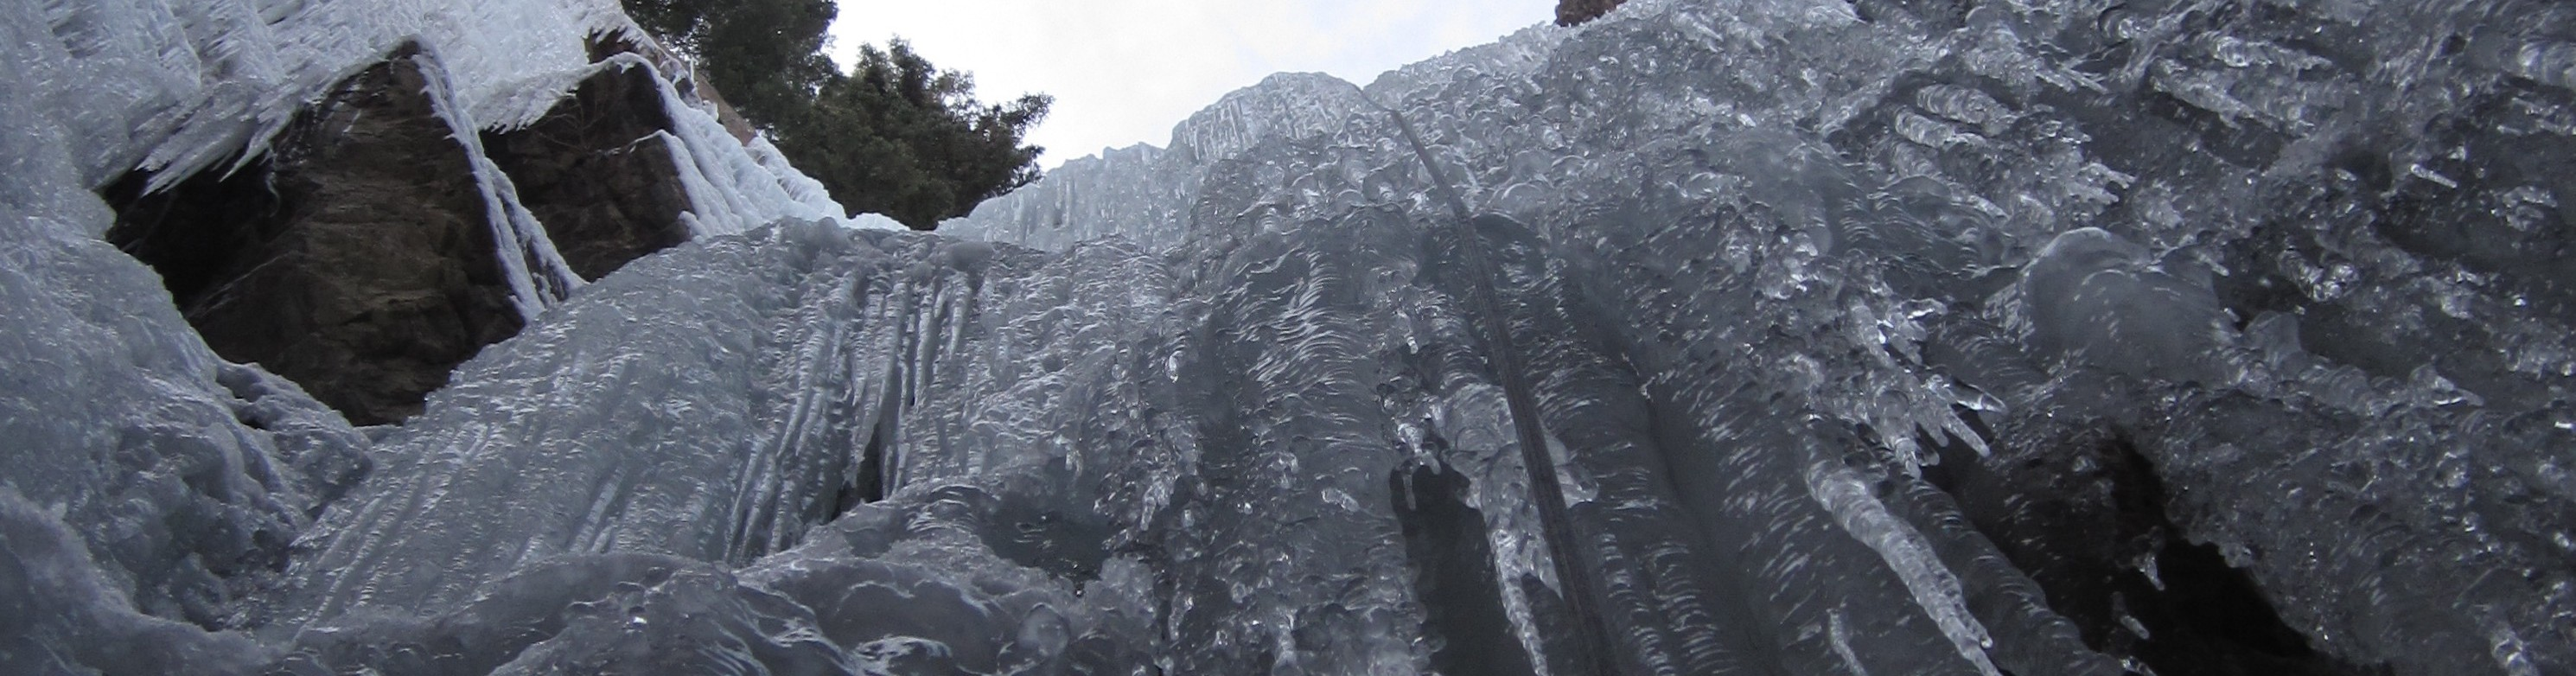 Ouray Backcountry Ice Climbing Tour